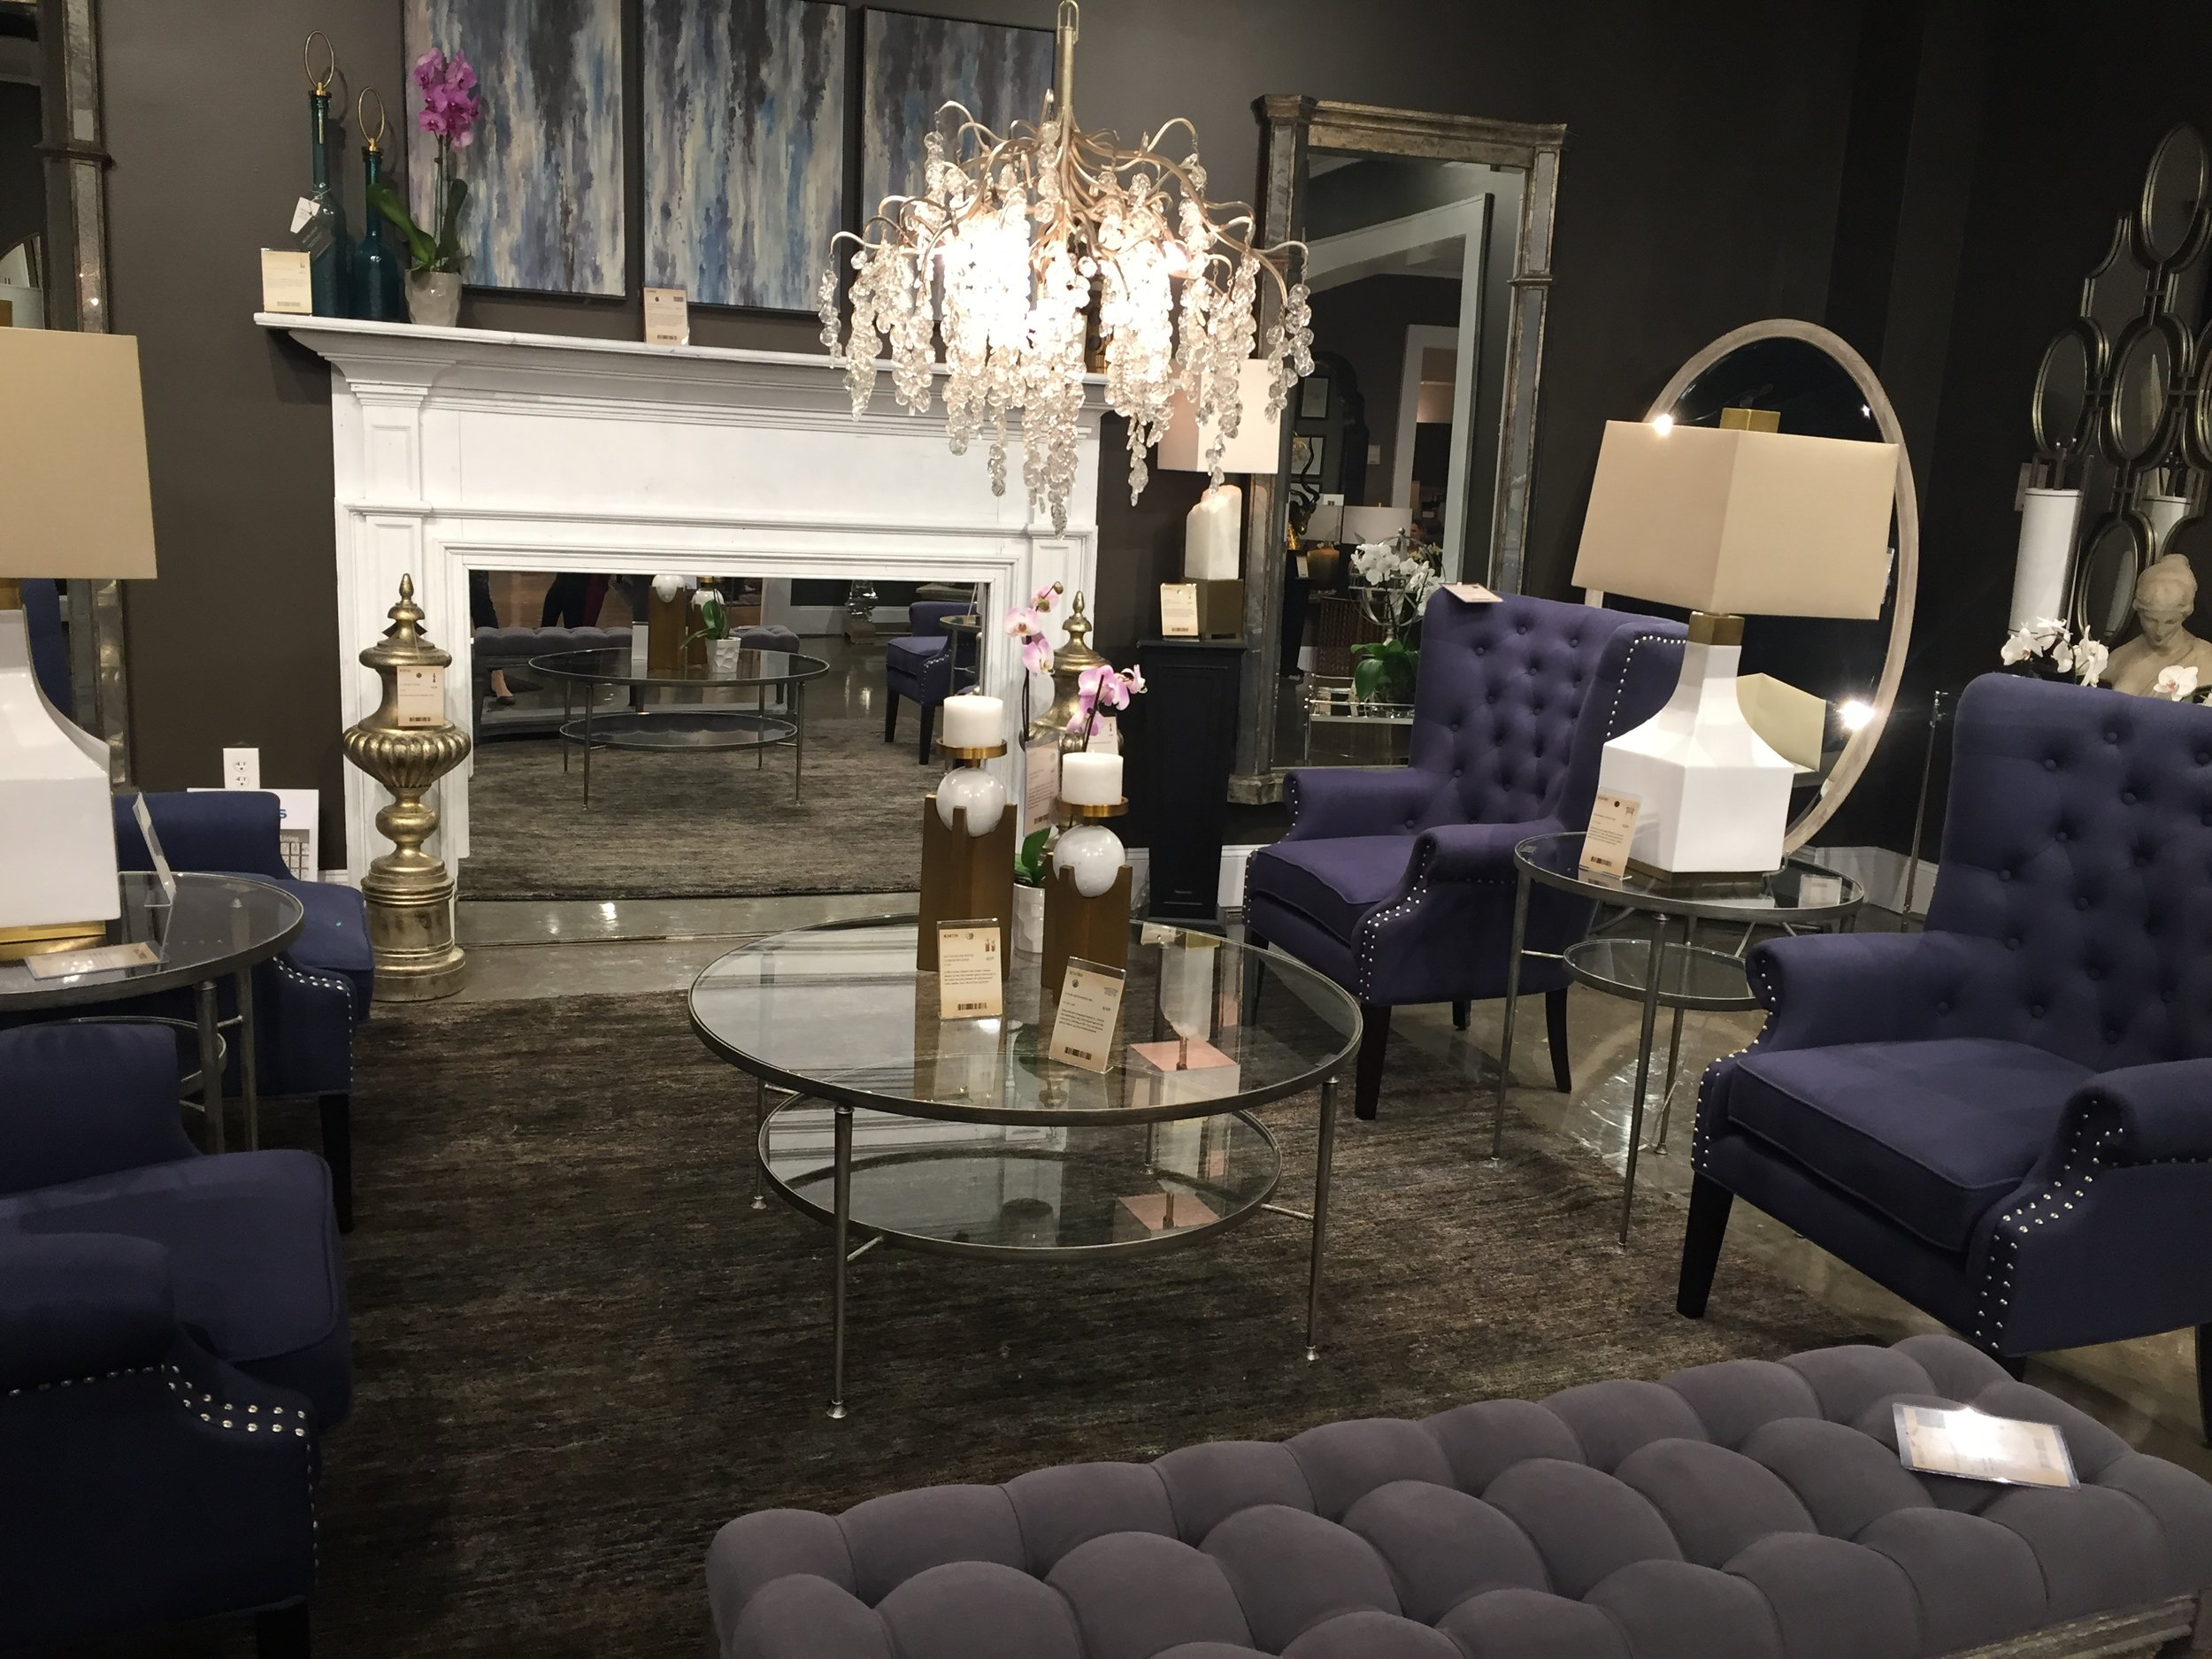 Deep, stormy, moody blues and grays from Uttermost.